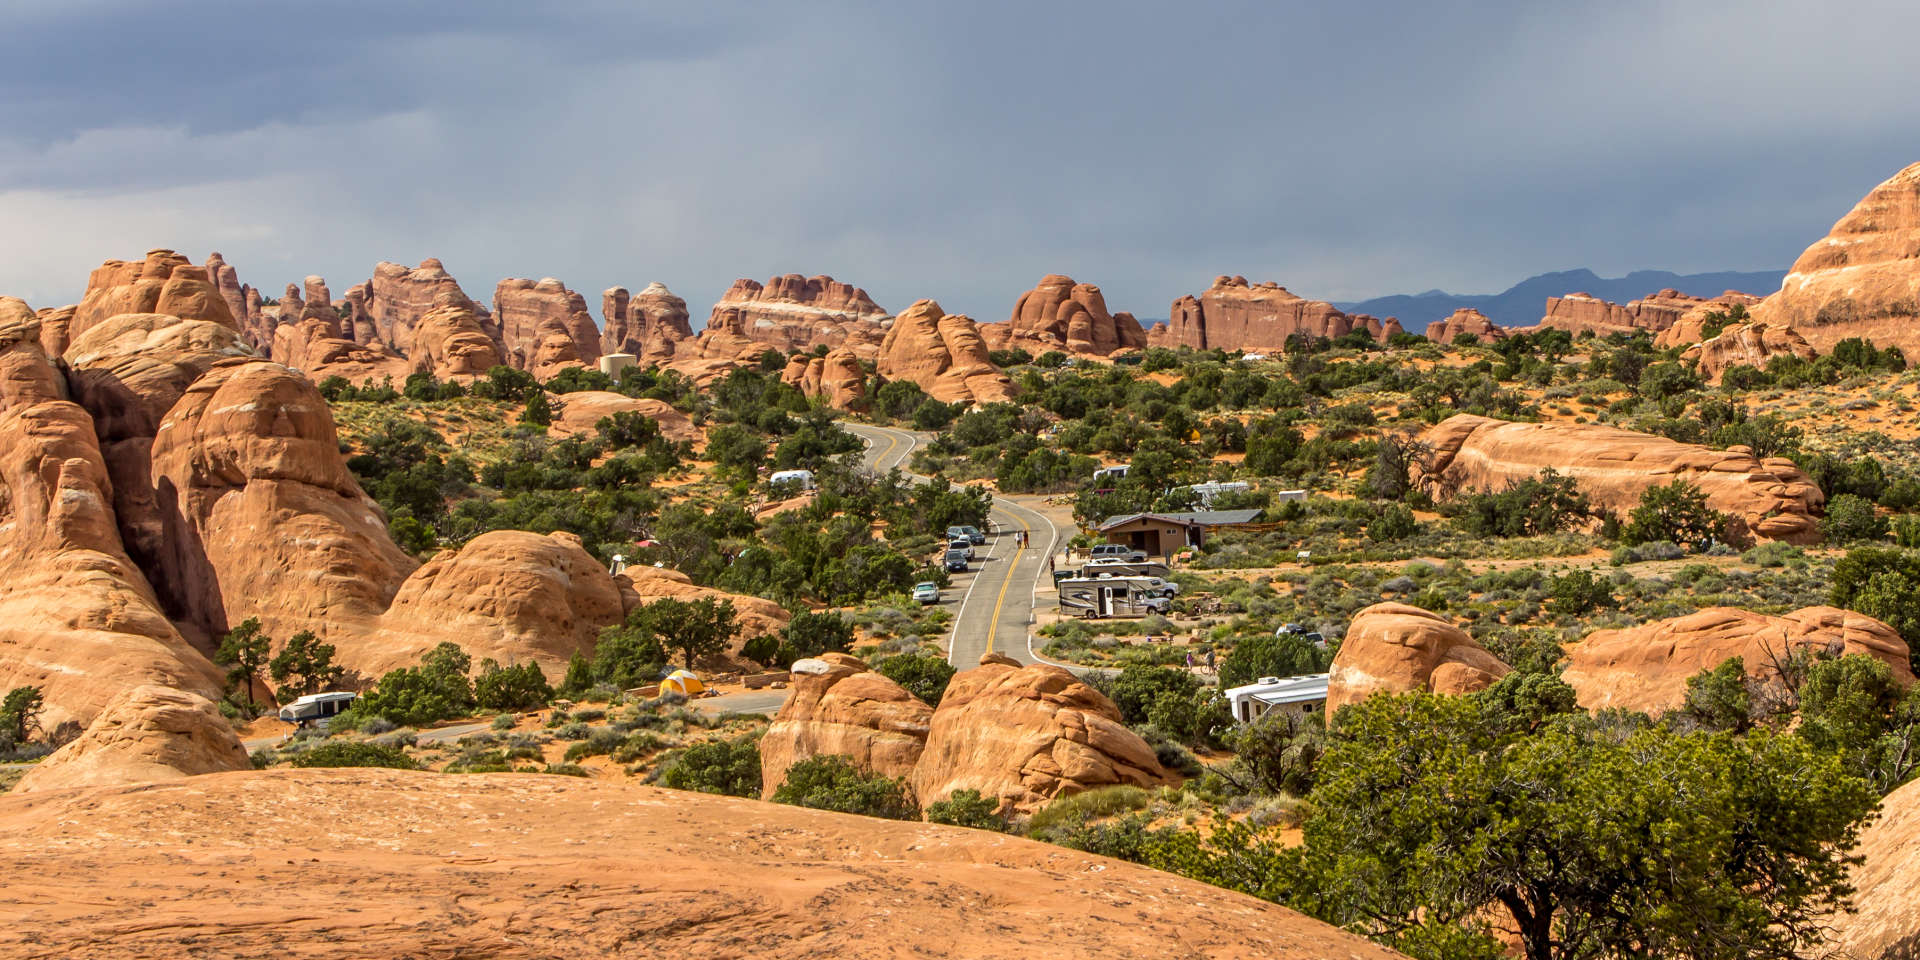 Devils Garden Campground, Arches, UT: 7 Hipcamper reviews and 54 photos